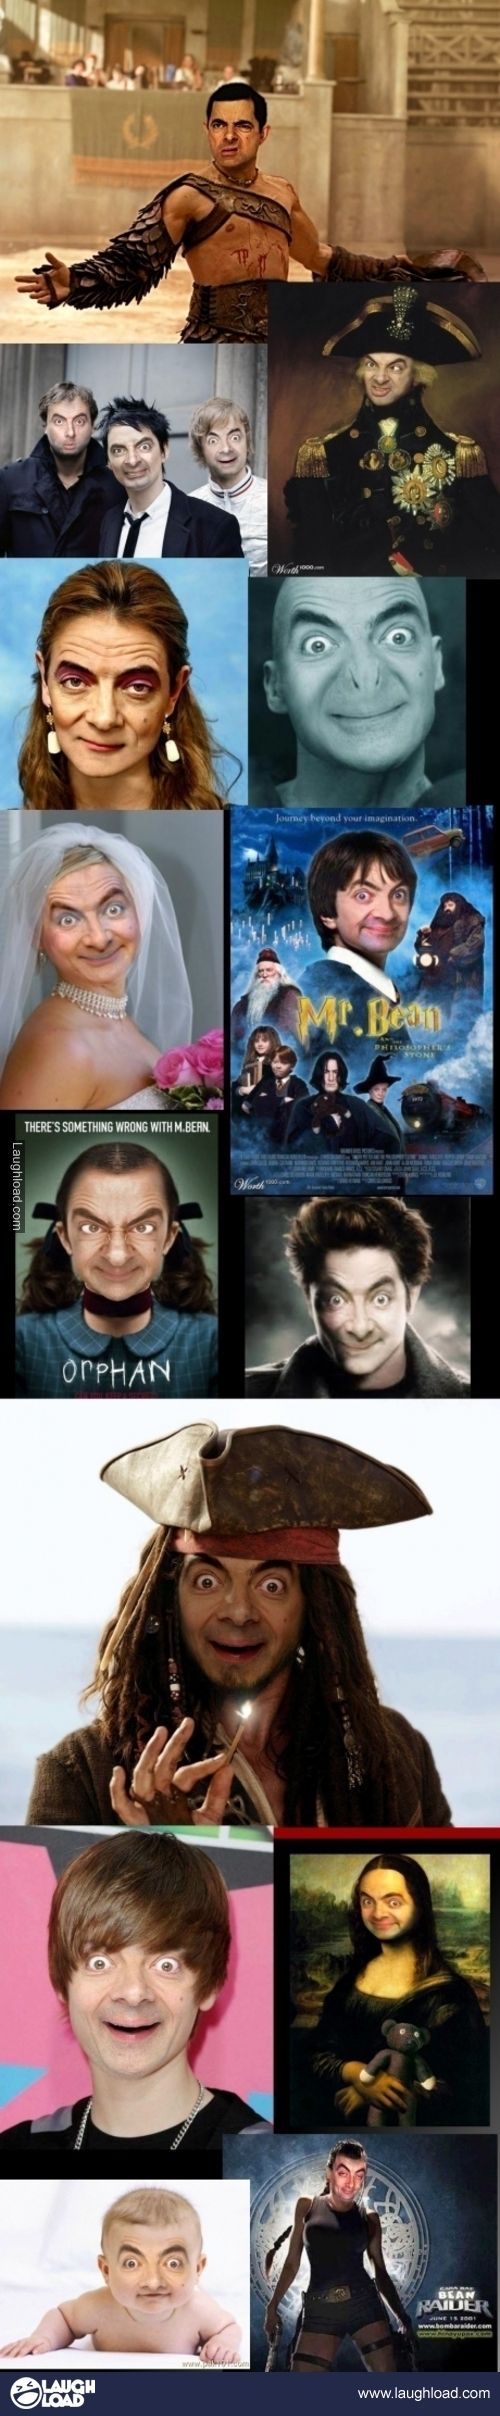 jajajaja mr. bean!!!